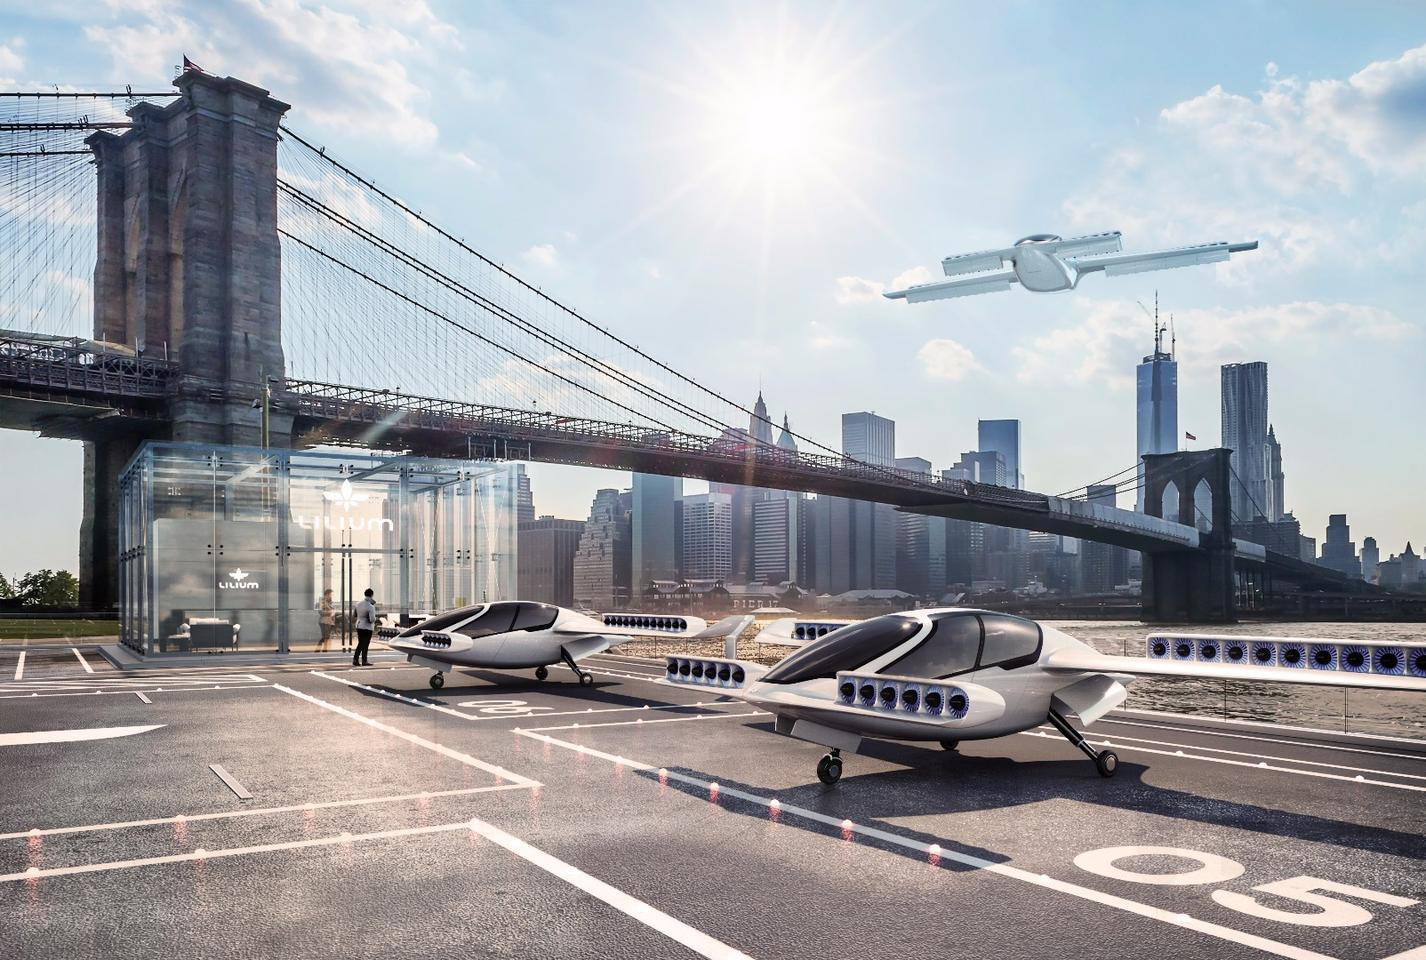 Lilium says its electric VTOL jet could take travelers from Manhattan to JFK Airport in five minutes, compared to 55 minutes by car